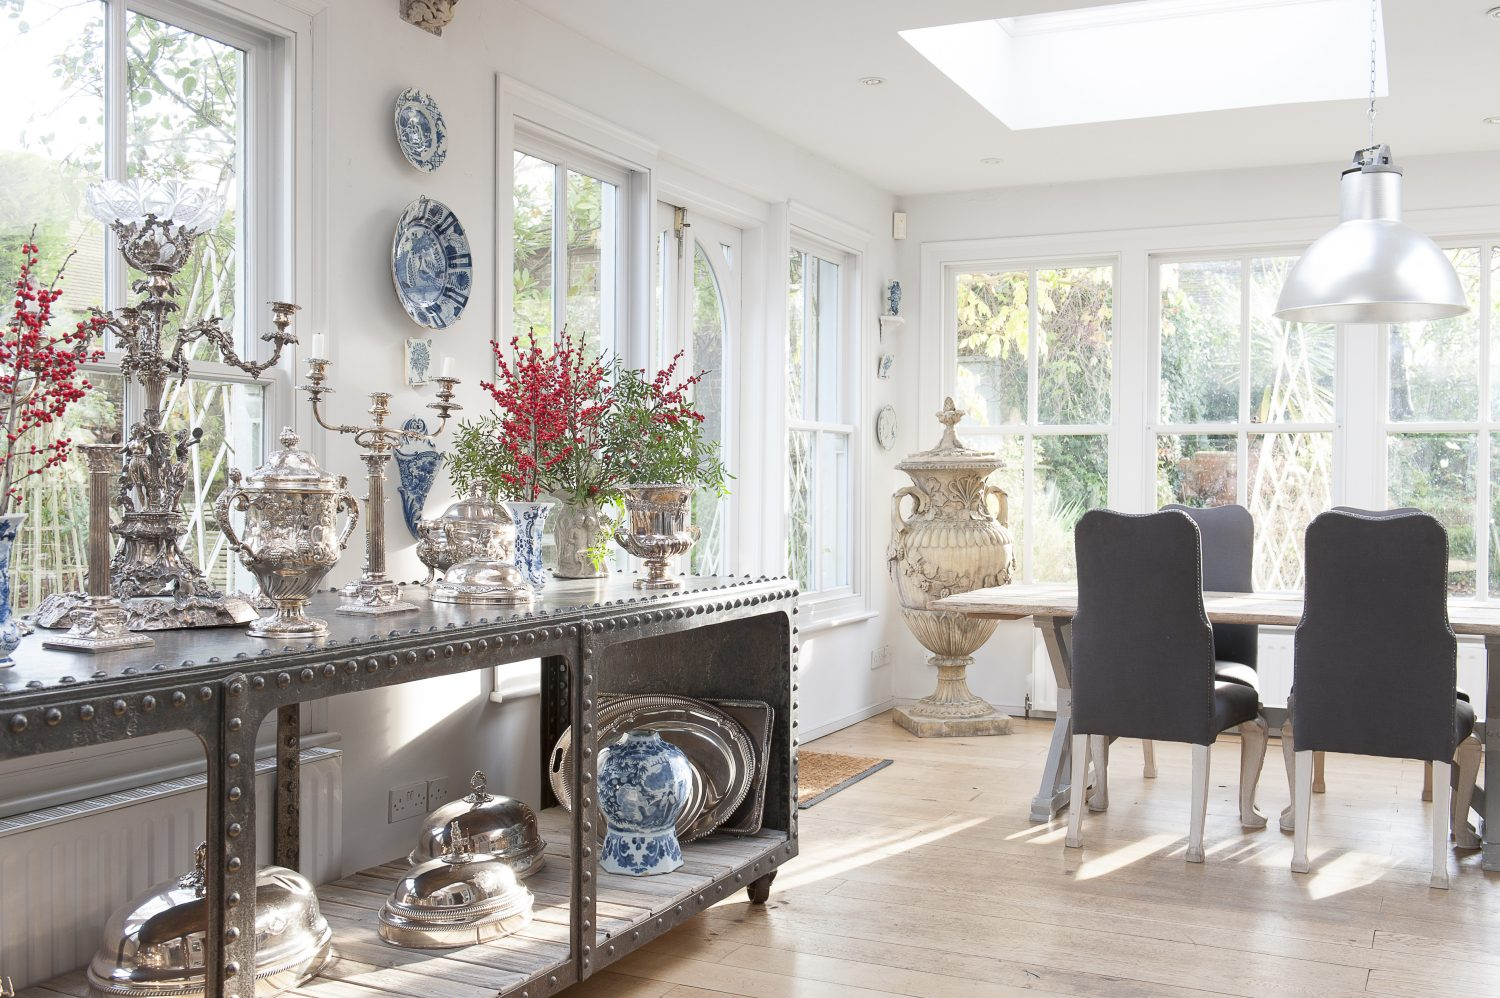 The bright and airy orangery.